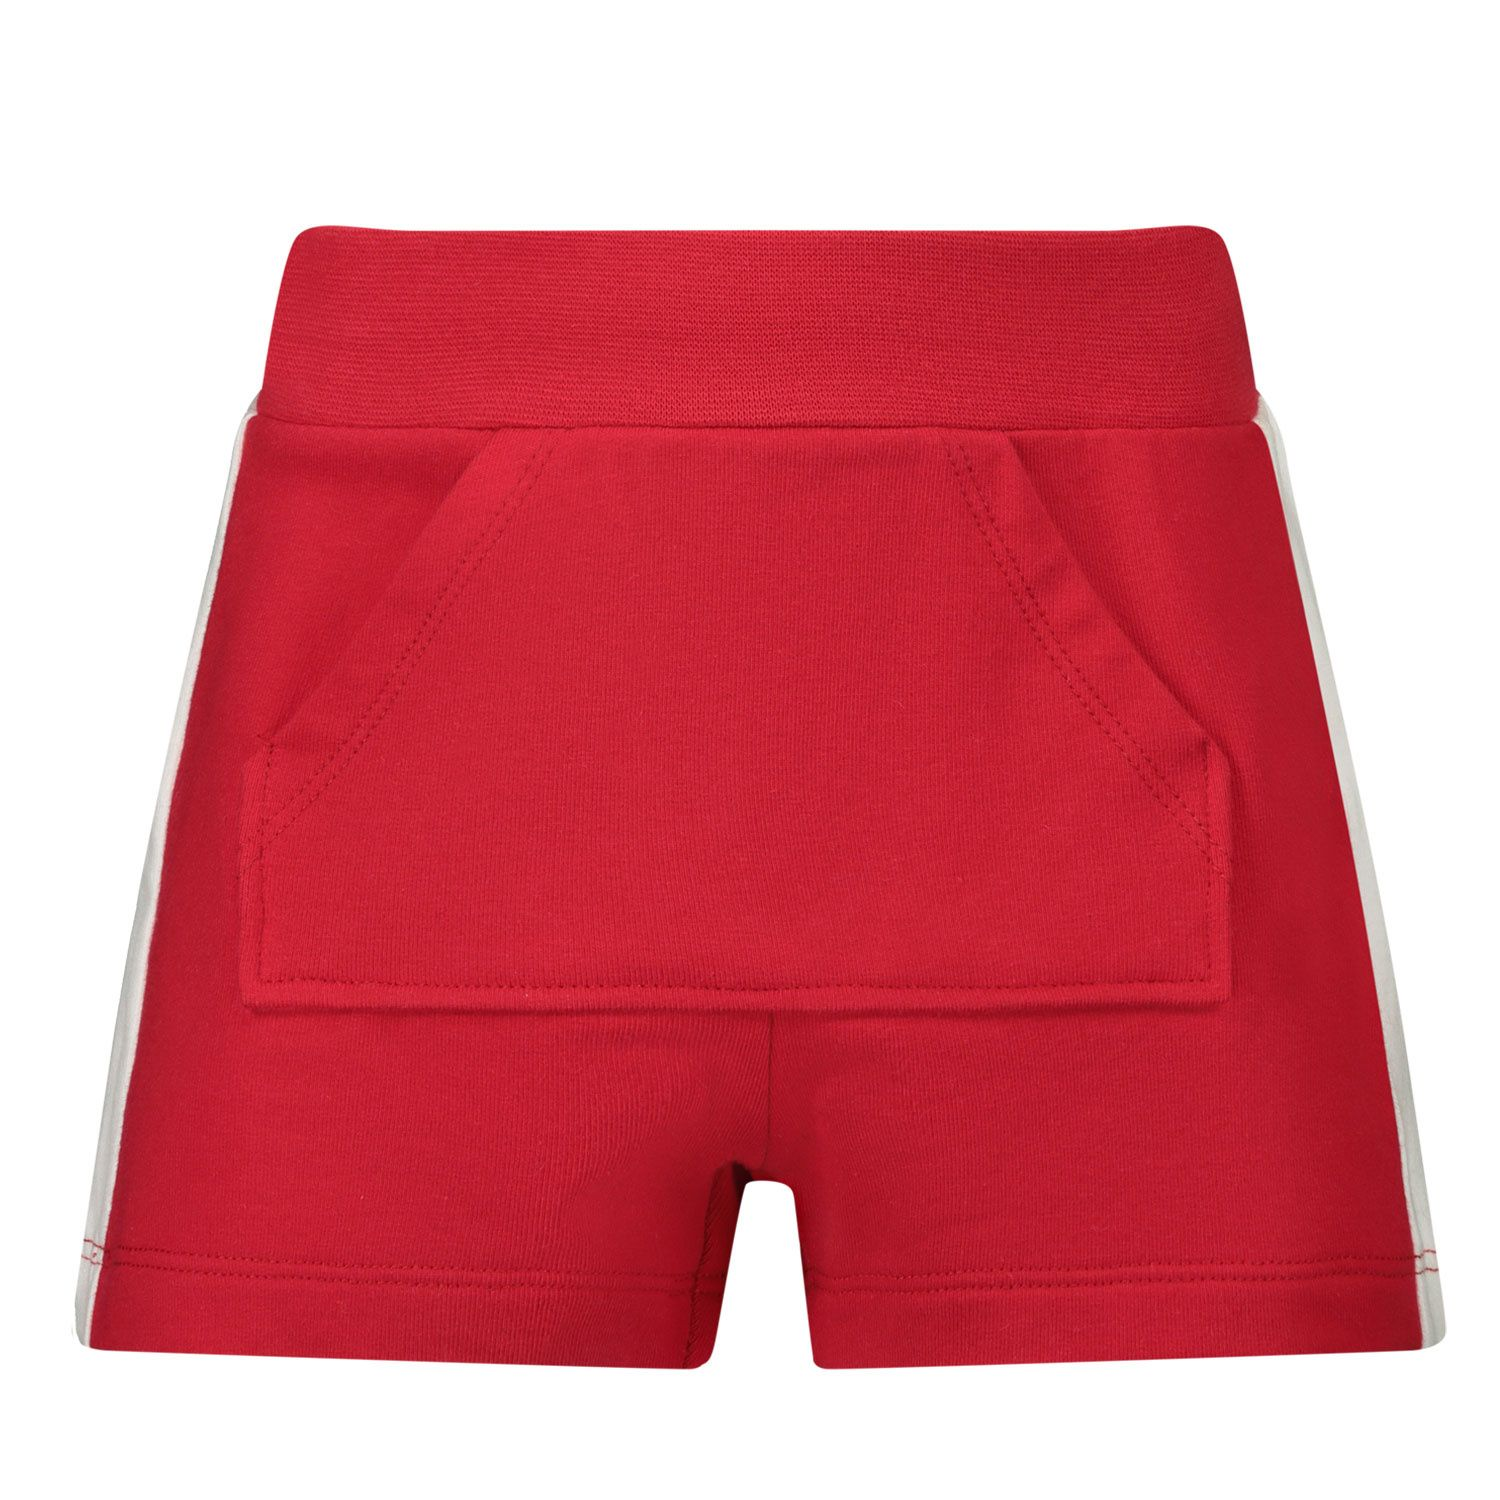 Picture of MonnaLisa 397411R1 baby shorts red